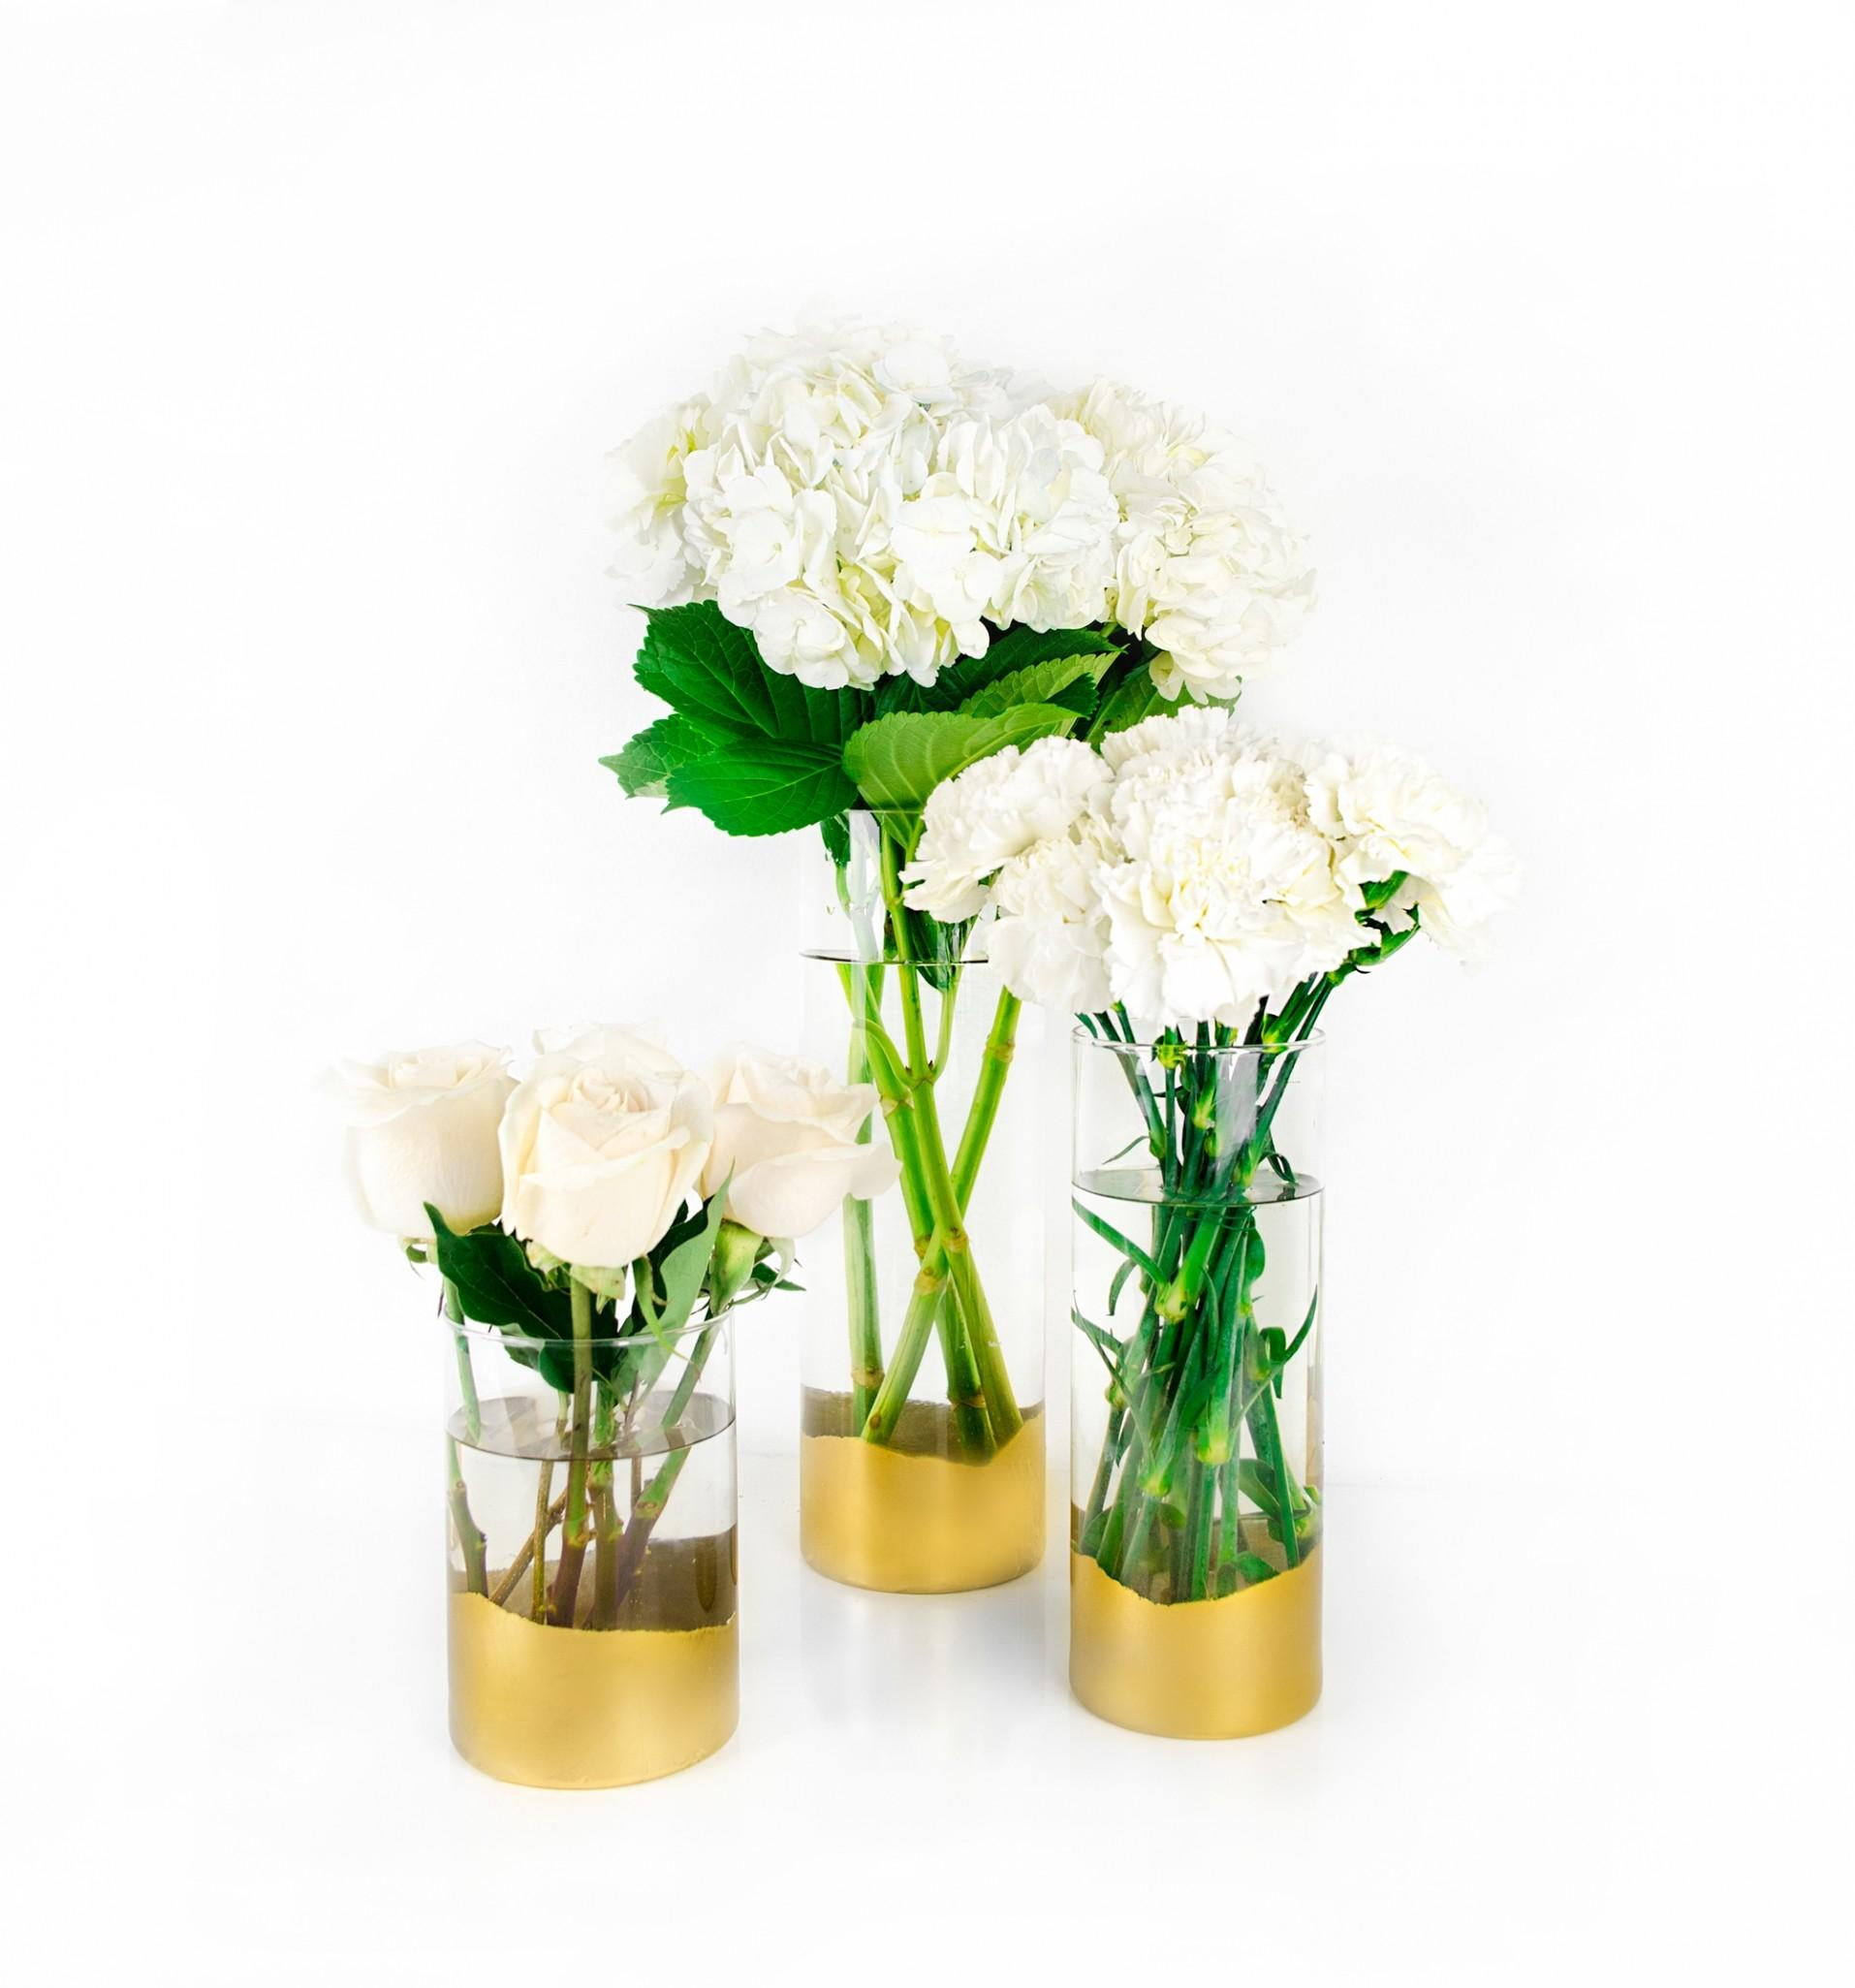 Diy Gold Vase Quick Easy Idea